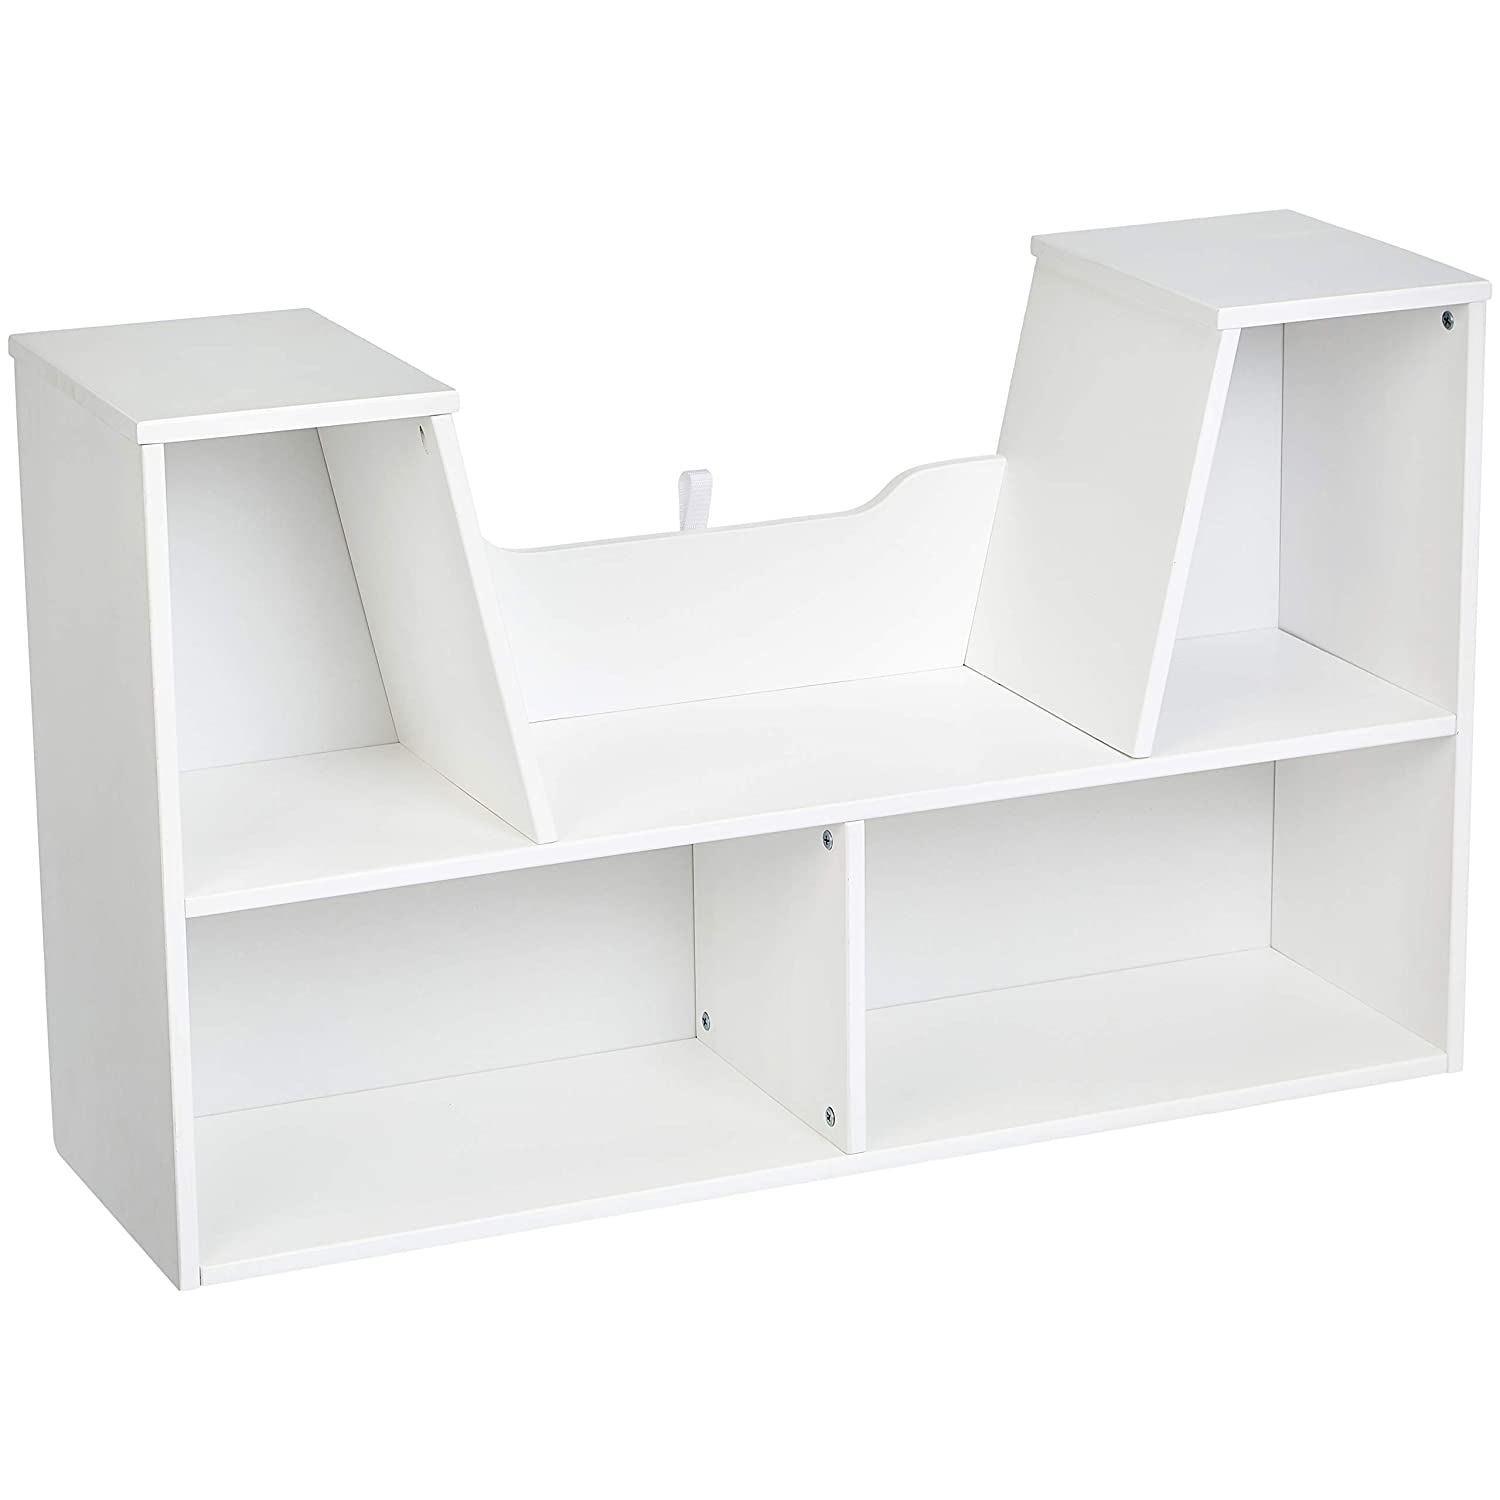 AmazonBasics Kids Bookcase with Reading Nook and Storage Shelves, White